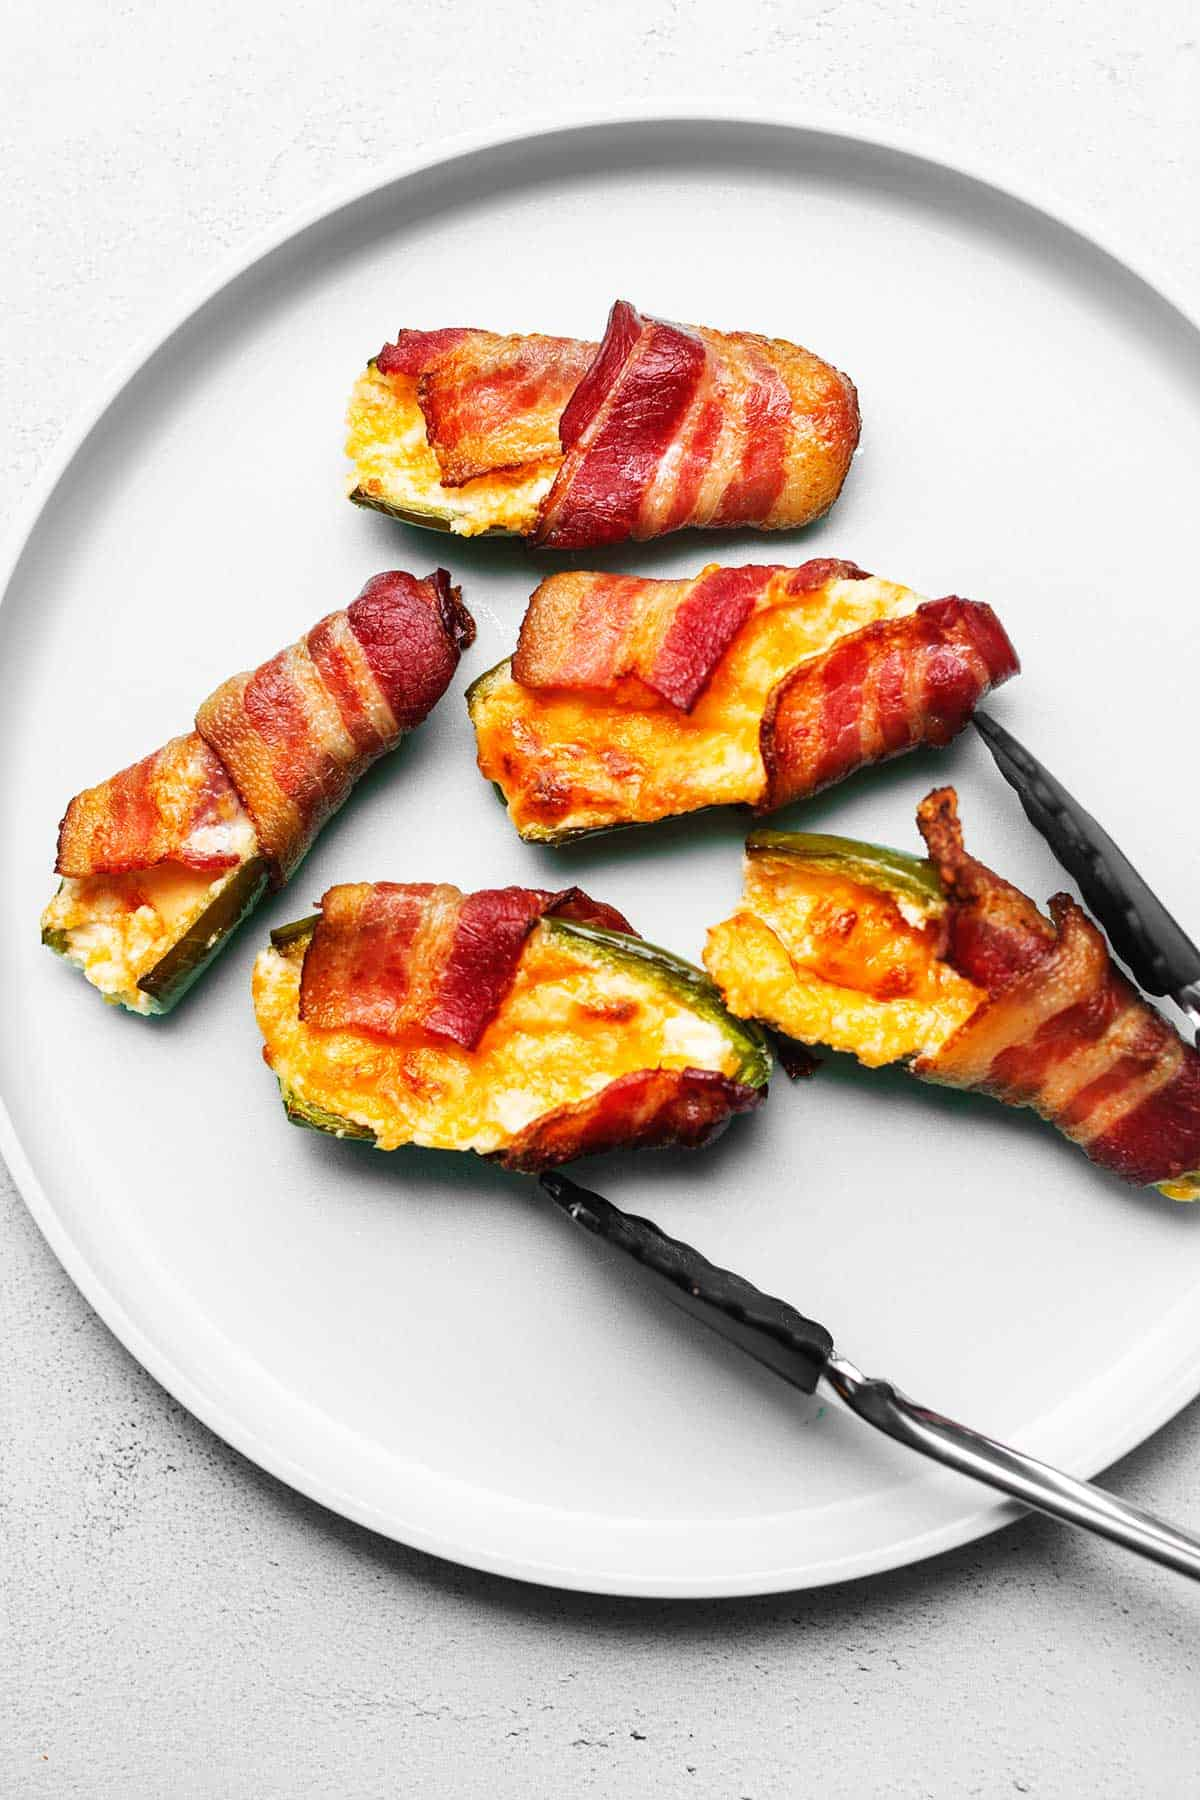 jalapeno poppers on a plate